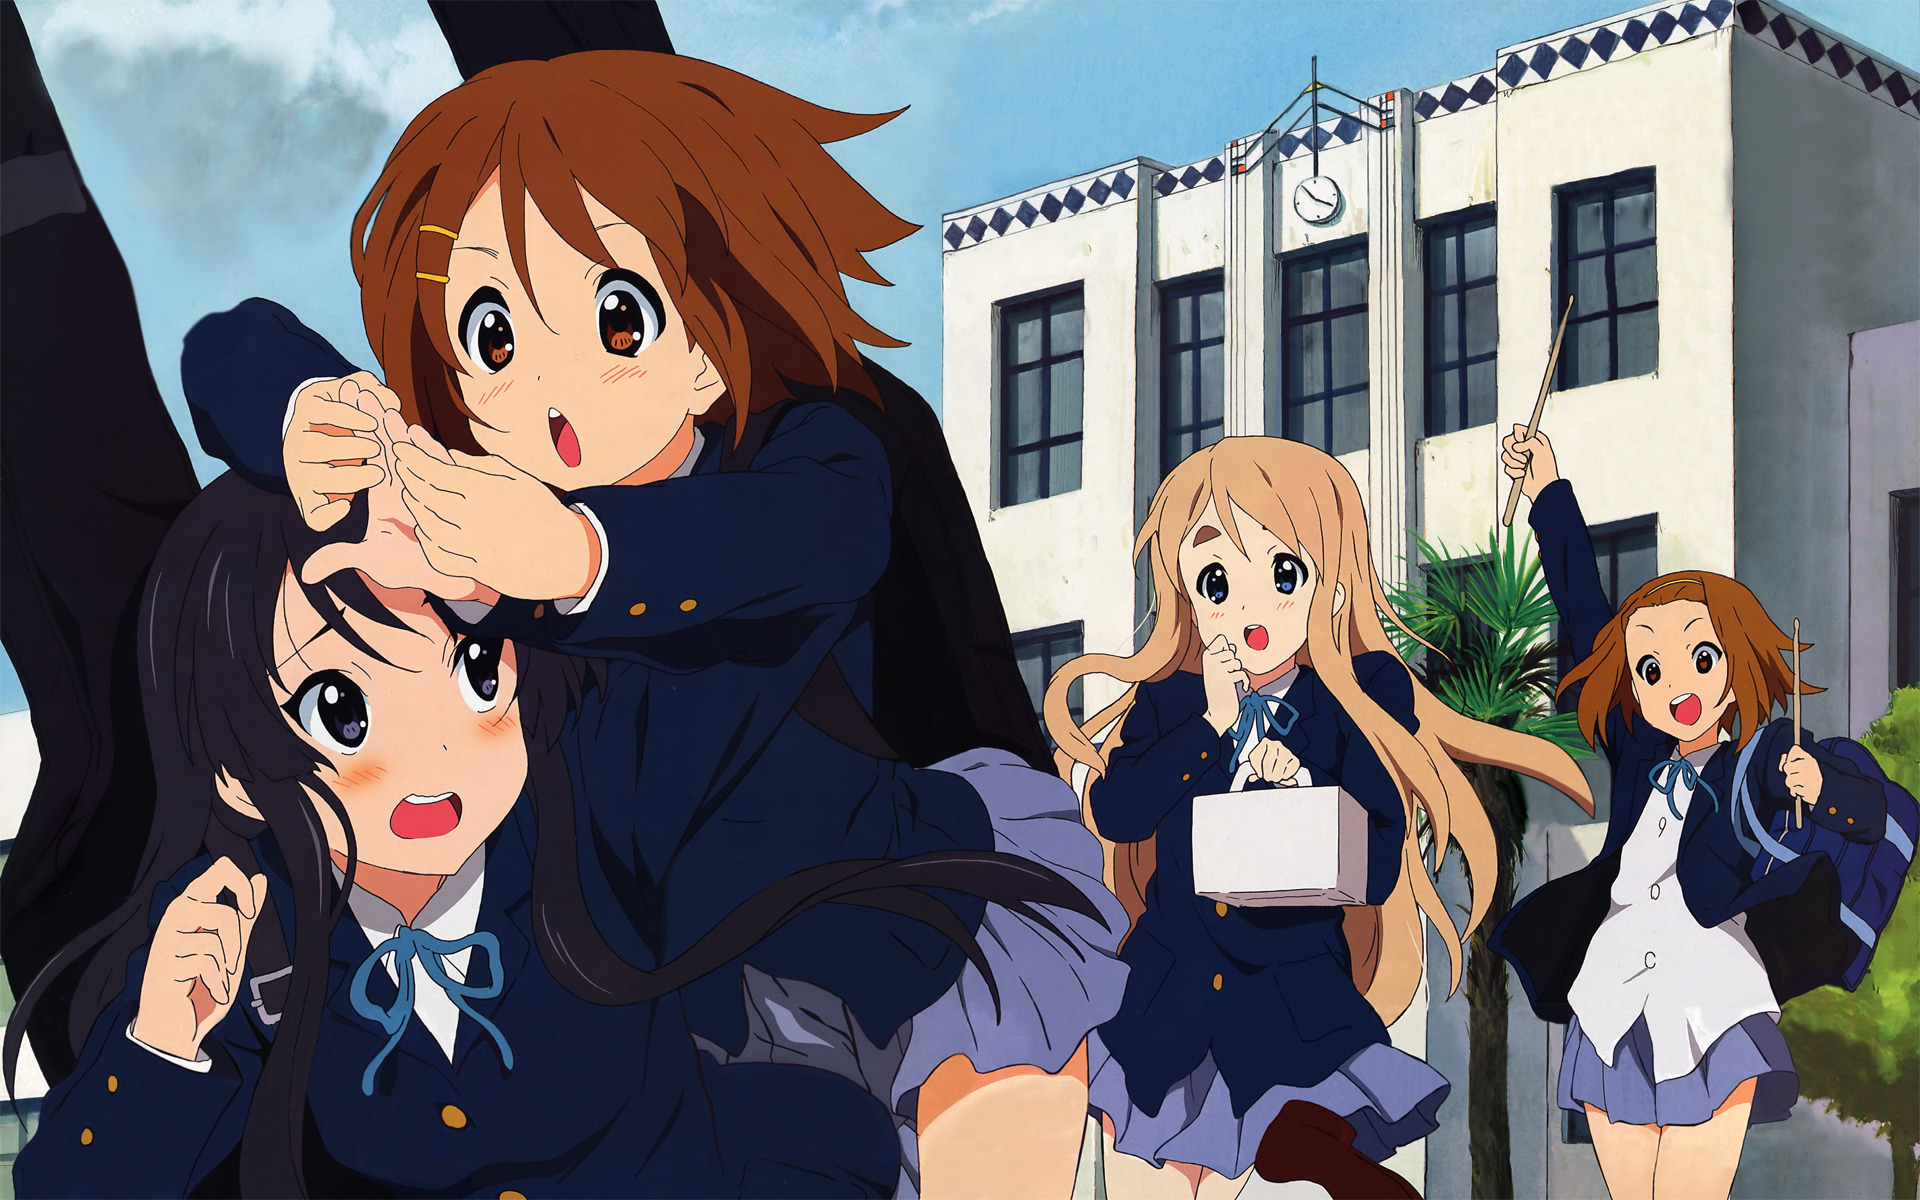 k - on school HD Wallpaper